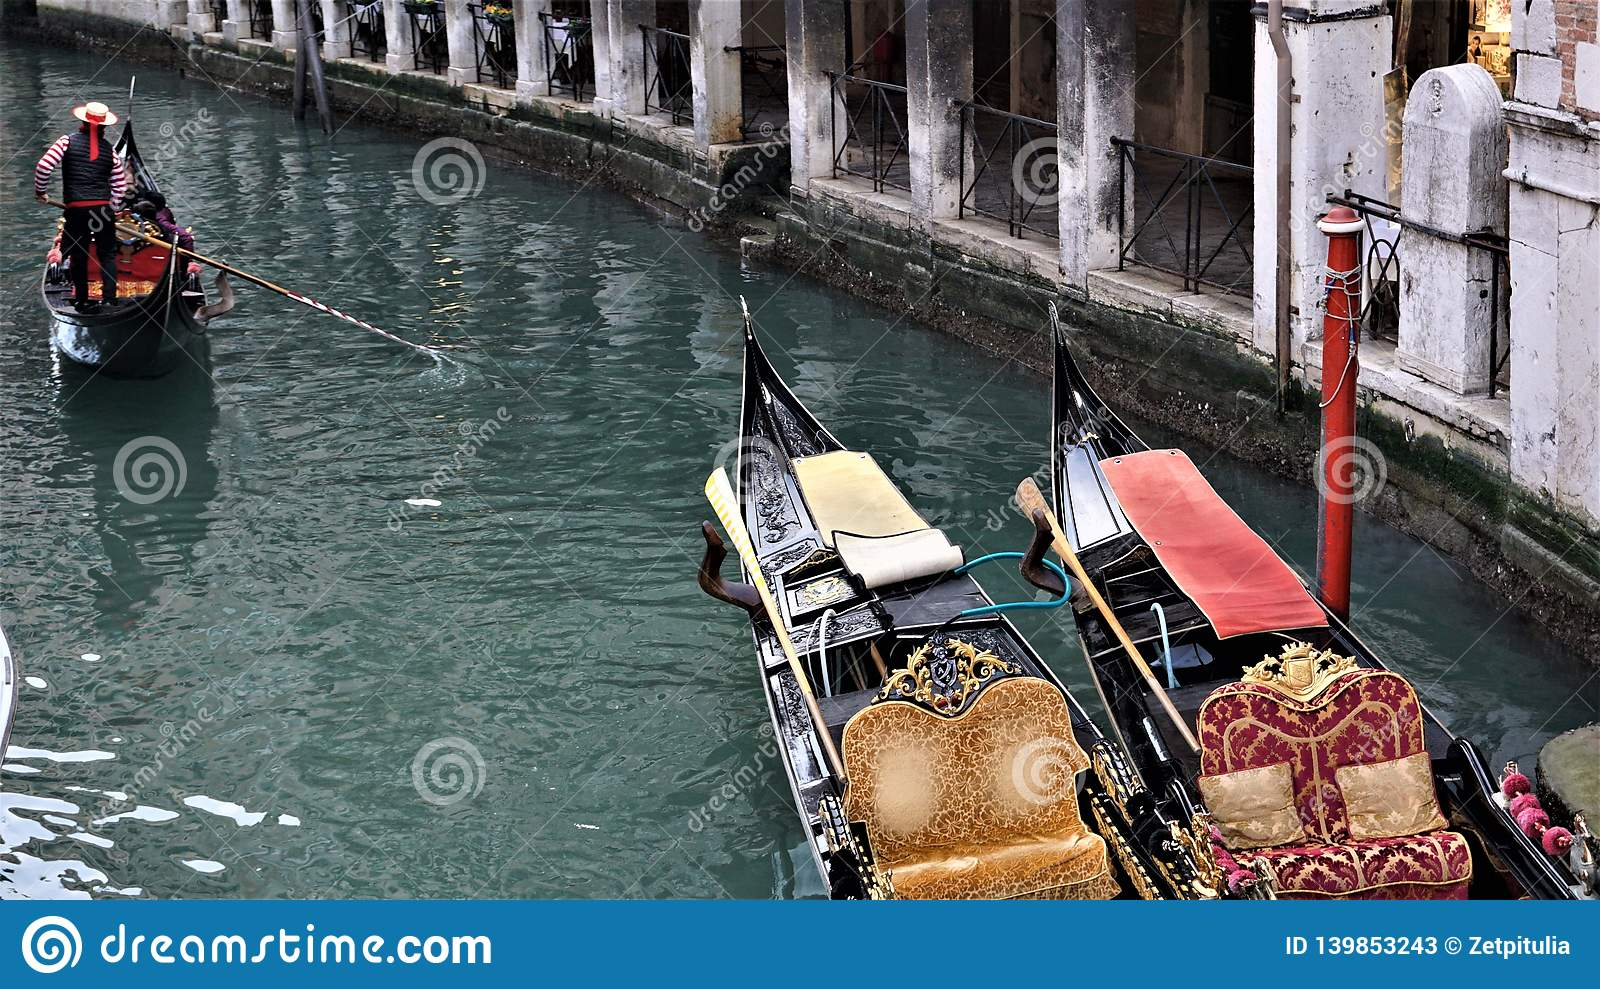 A channel with two gondolas and a gondolier floating near them in Venice, Italy